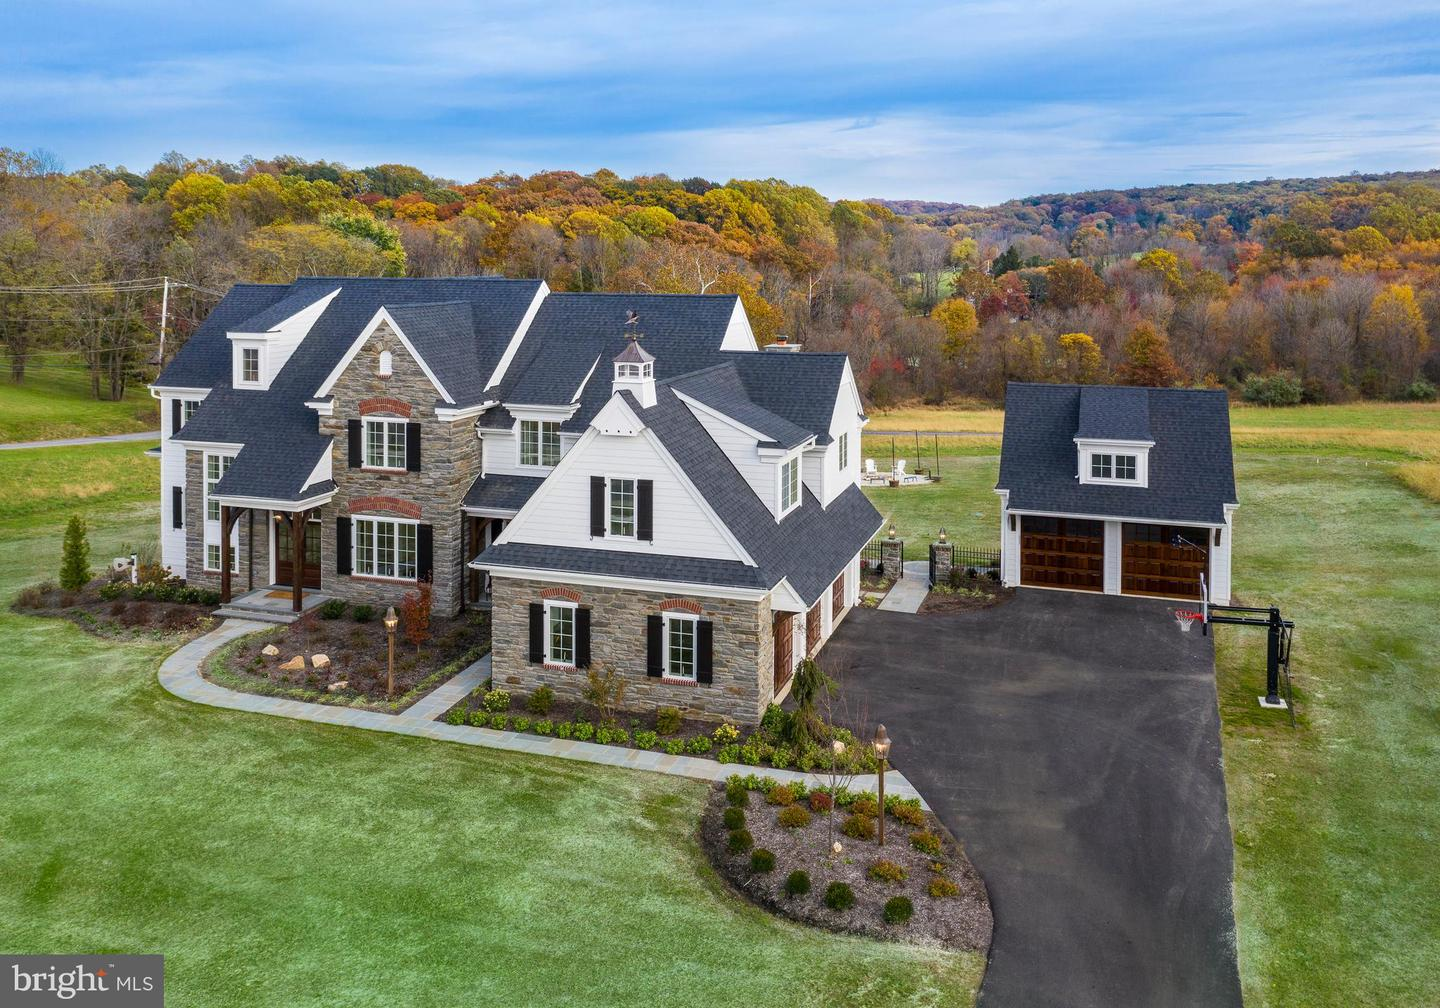 3104-C Darby Road Ardmore, PA 19003